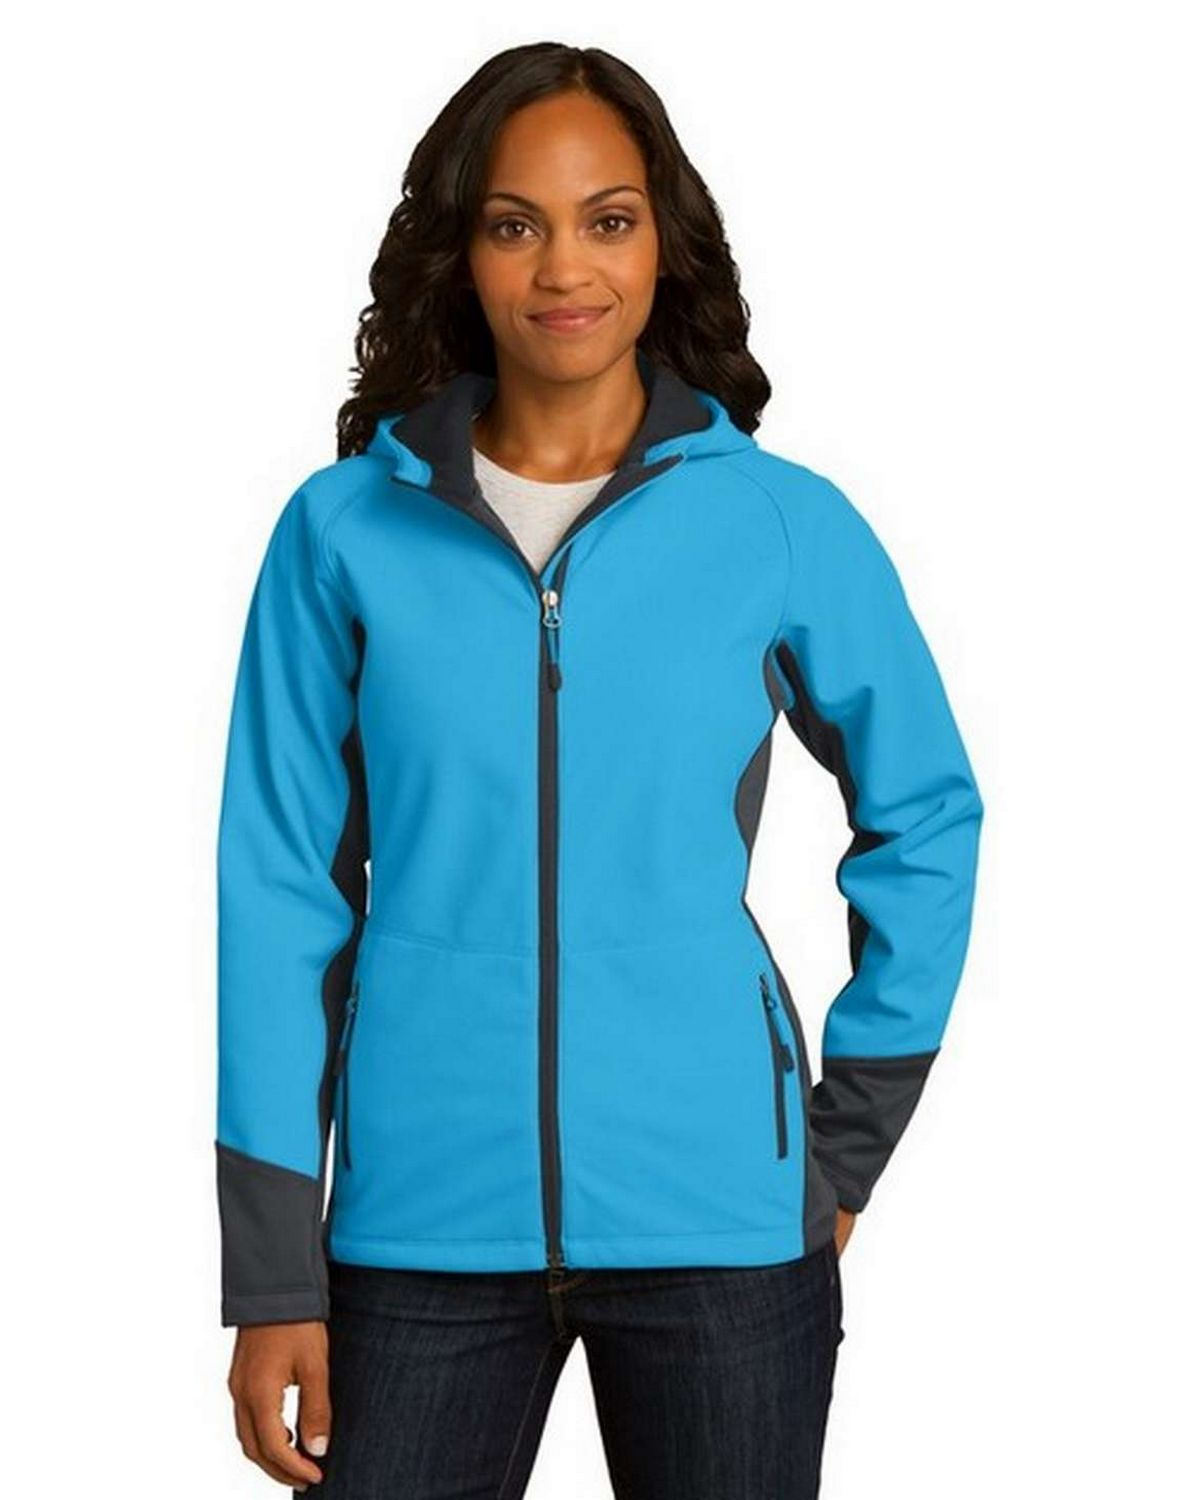 Port Authority L319 Ladies Vertical Hooded Soft Shell Jacket